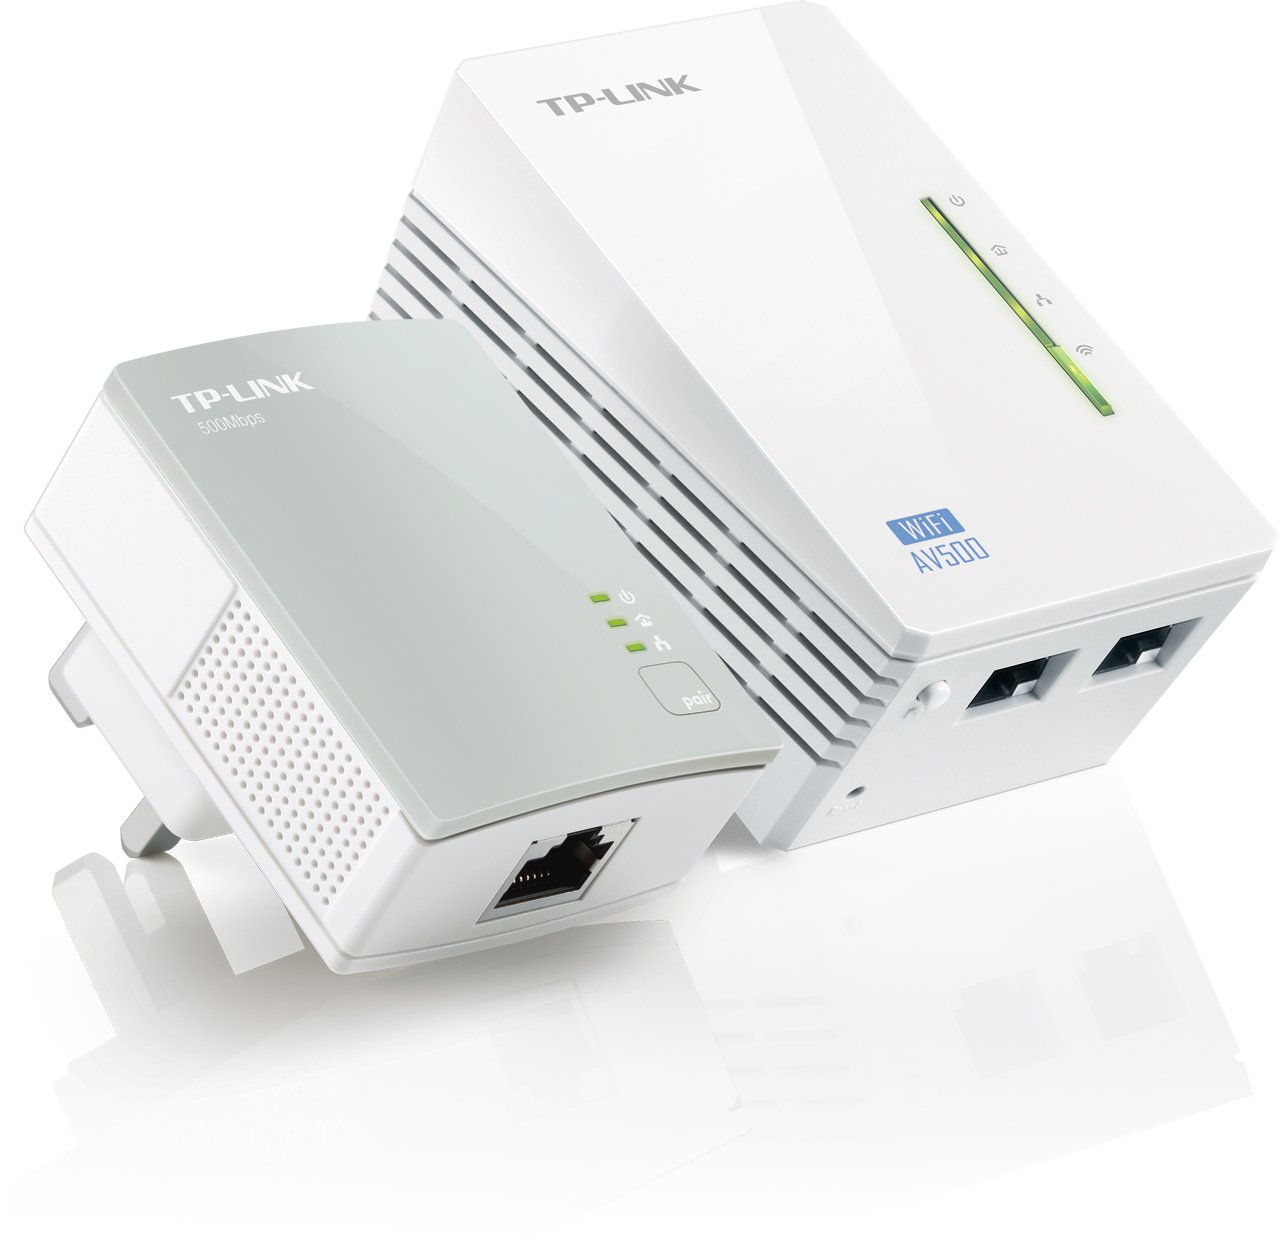 Image of the TP-Link TL-WPA4220KIT AV500 Powerline 300M Wi-Fi Booster/Extender with Two LAN Ports Kit